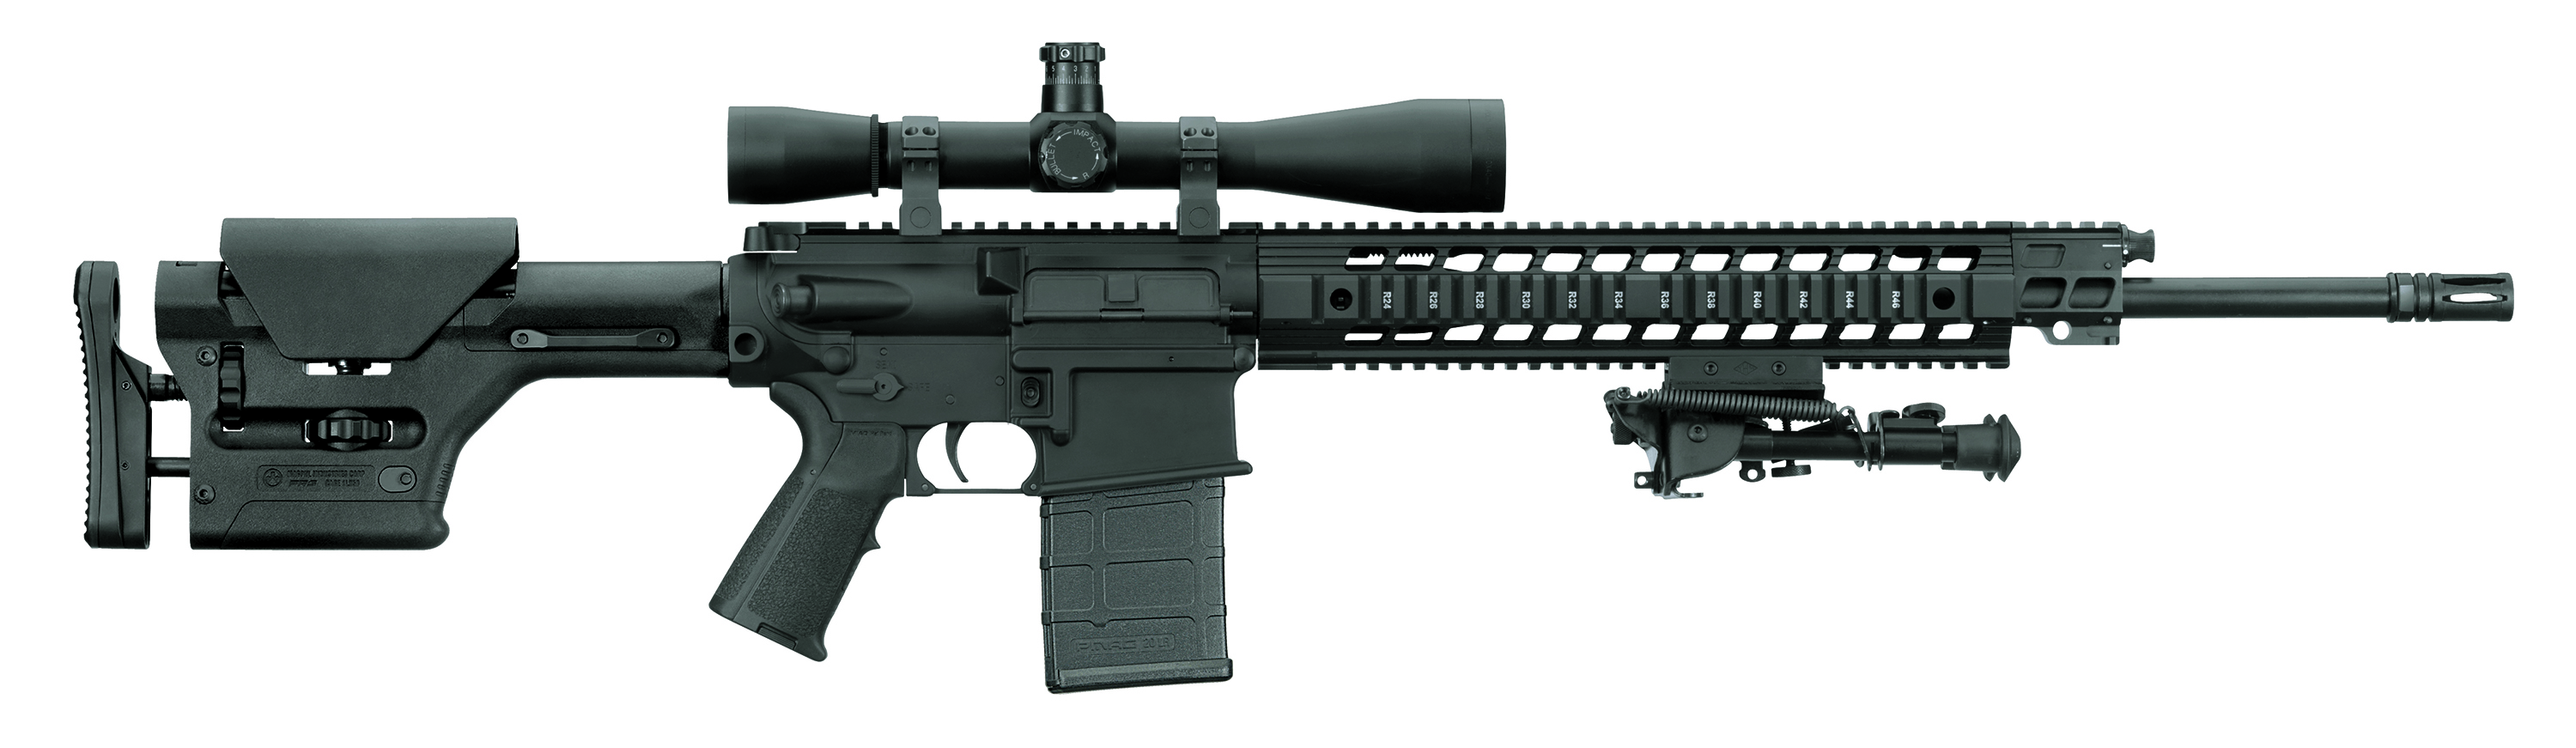 A black SIG 716, Precision Marksman Carbine, with the barrel pointed to the right on a white background.